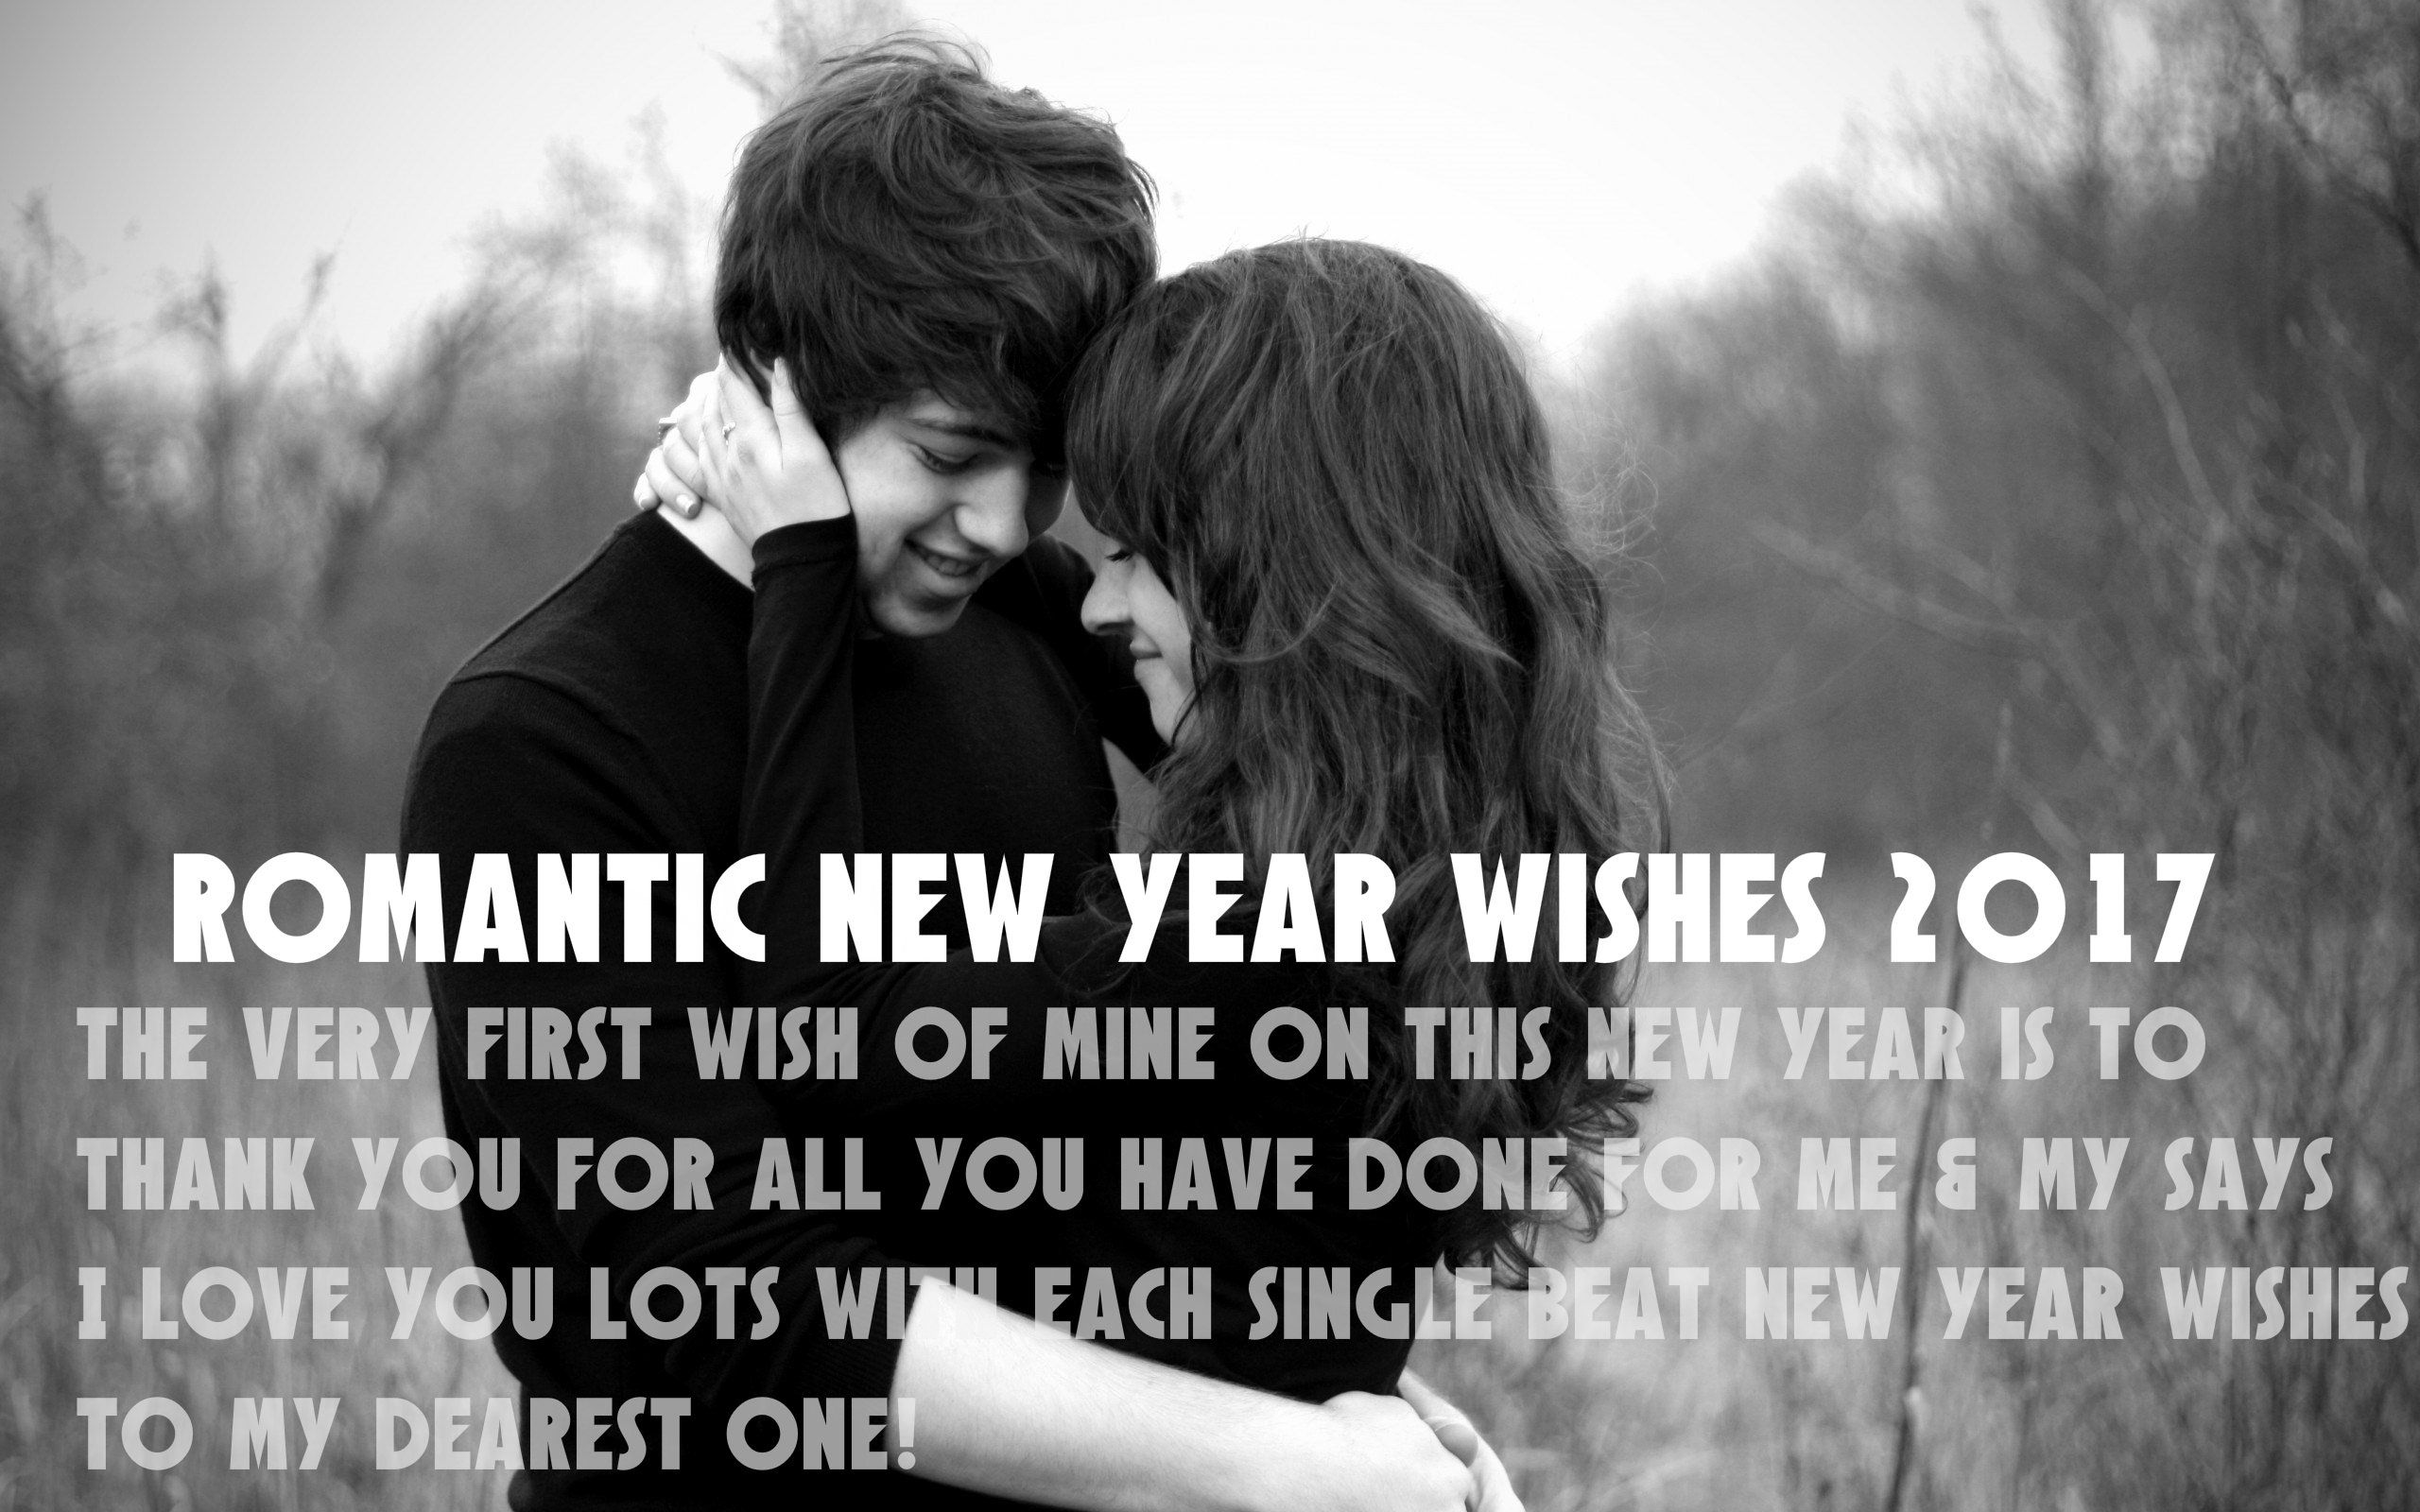 romantic new year wishes 2017 new year is the most romantic moments where you can wish romantic new year wishes 2017 to your love ones like your husband